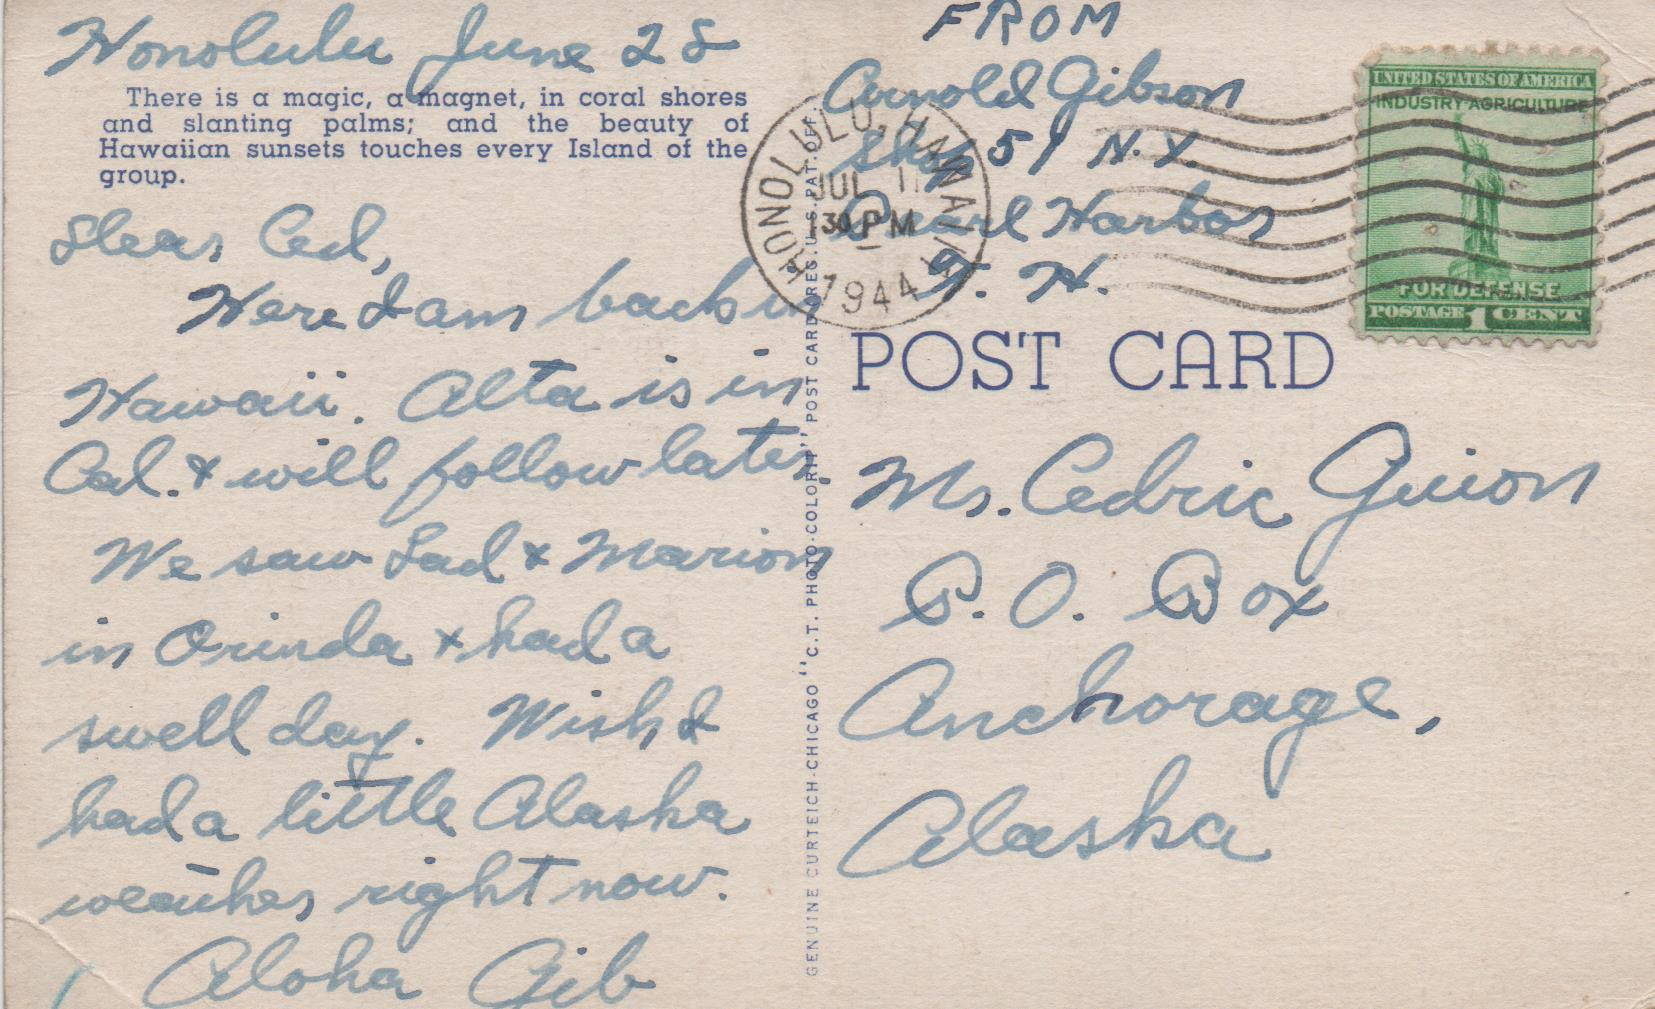 Gibby - Post card to Ced from Hawaii - message - 1944